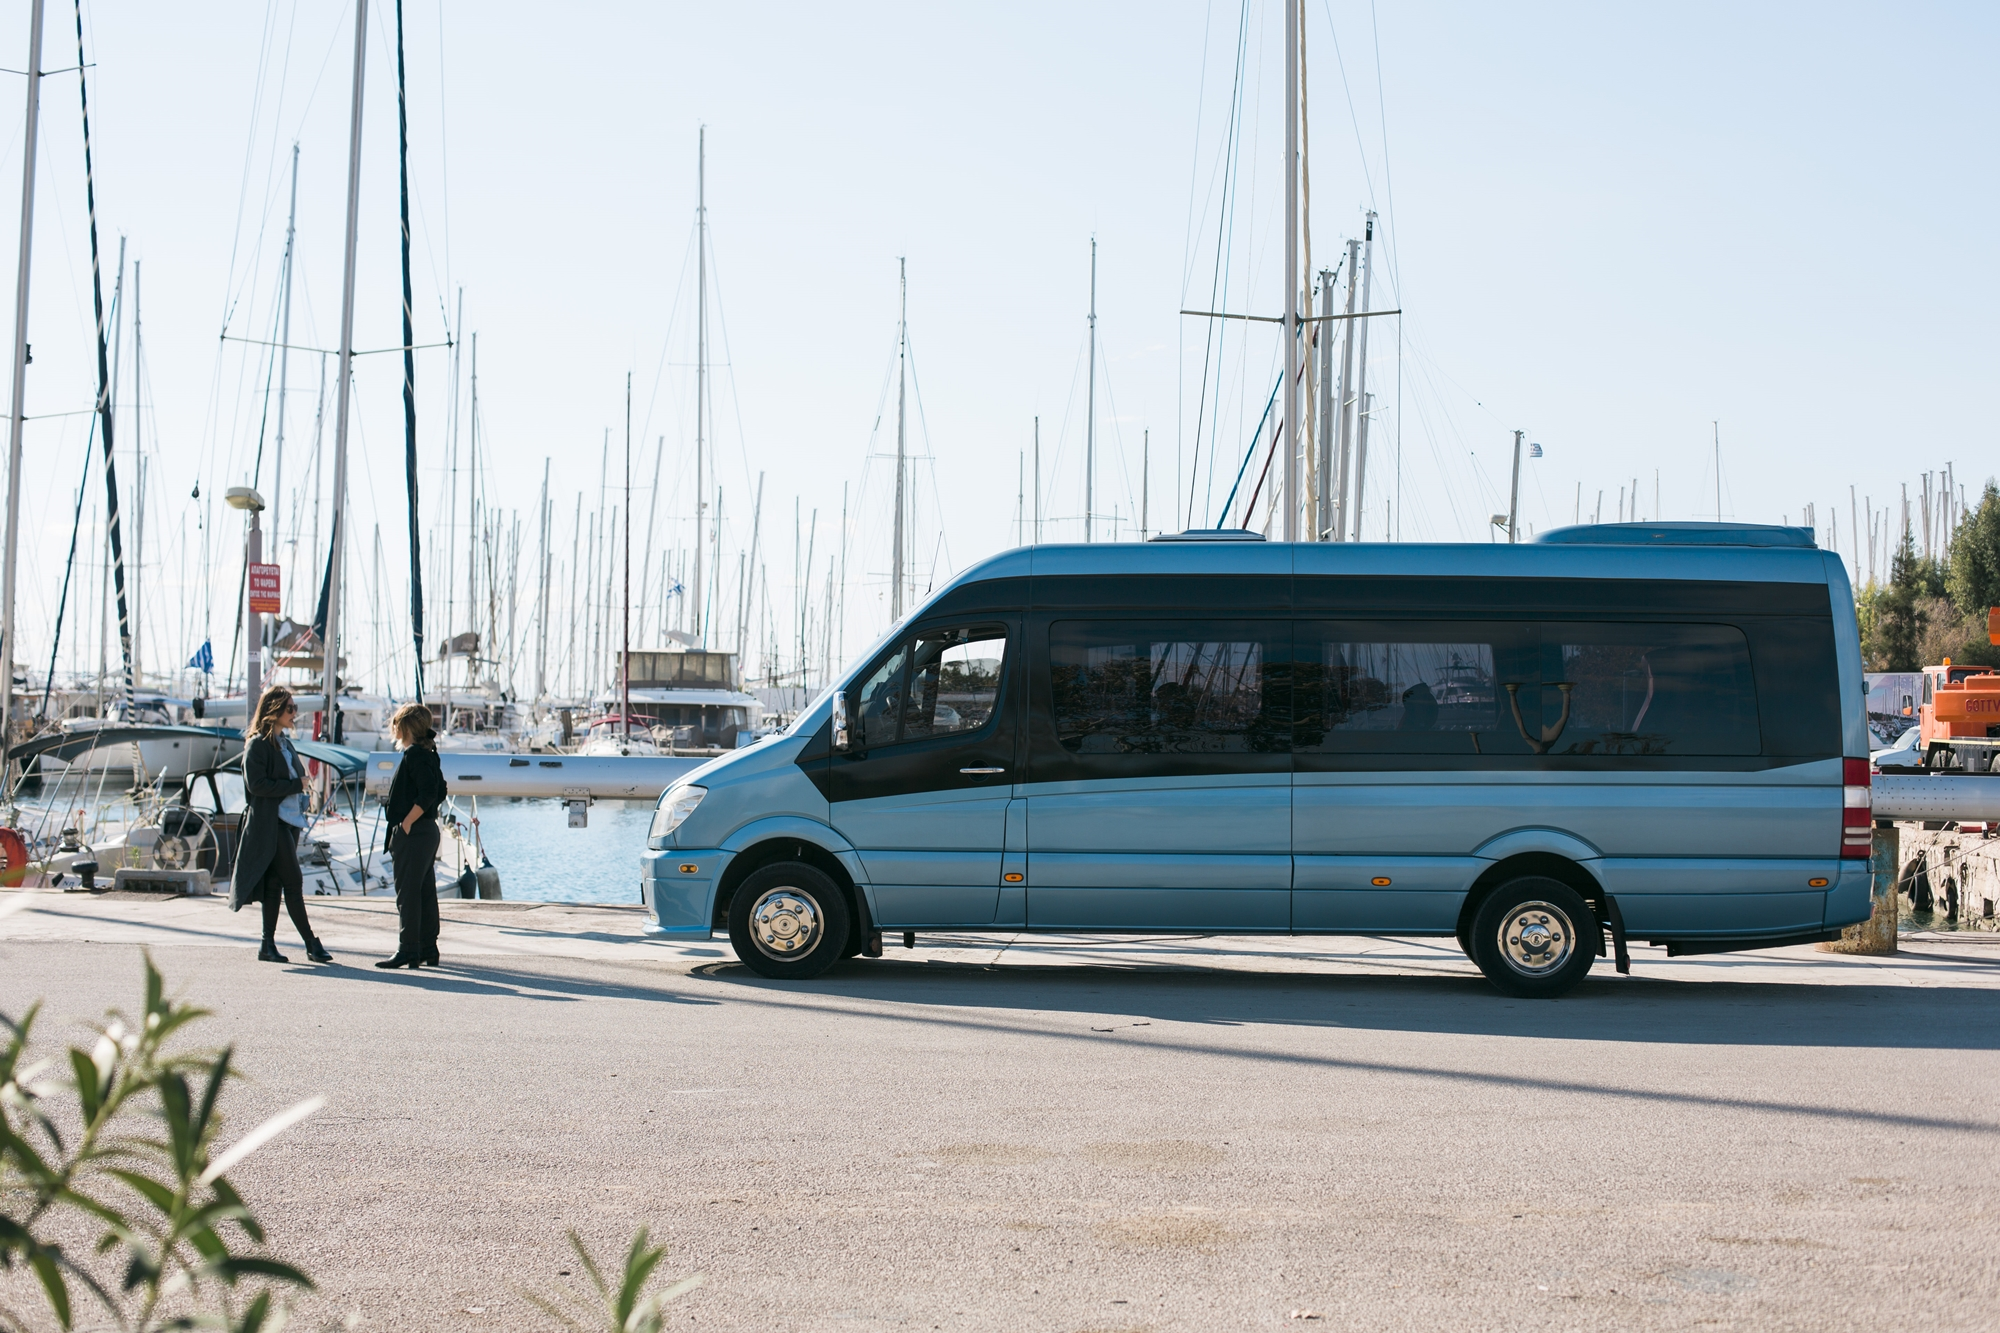 Ένα bachelorette mini bus για τέλειο bachelor party